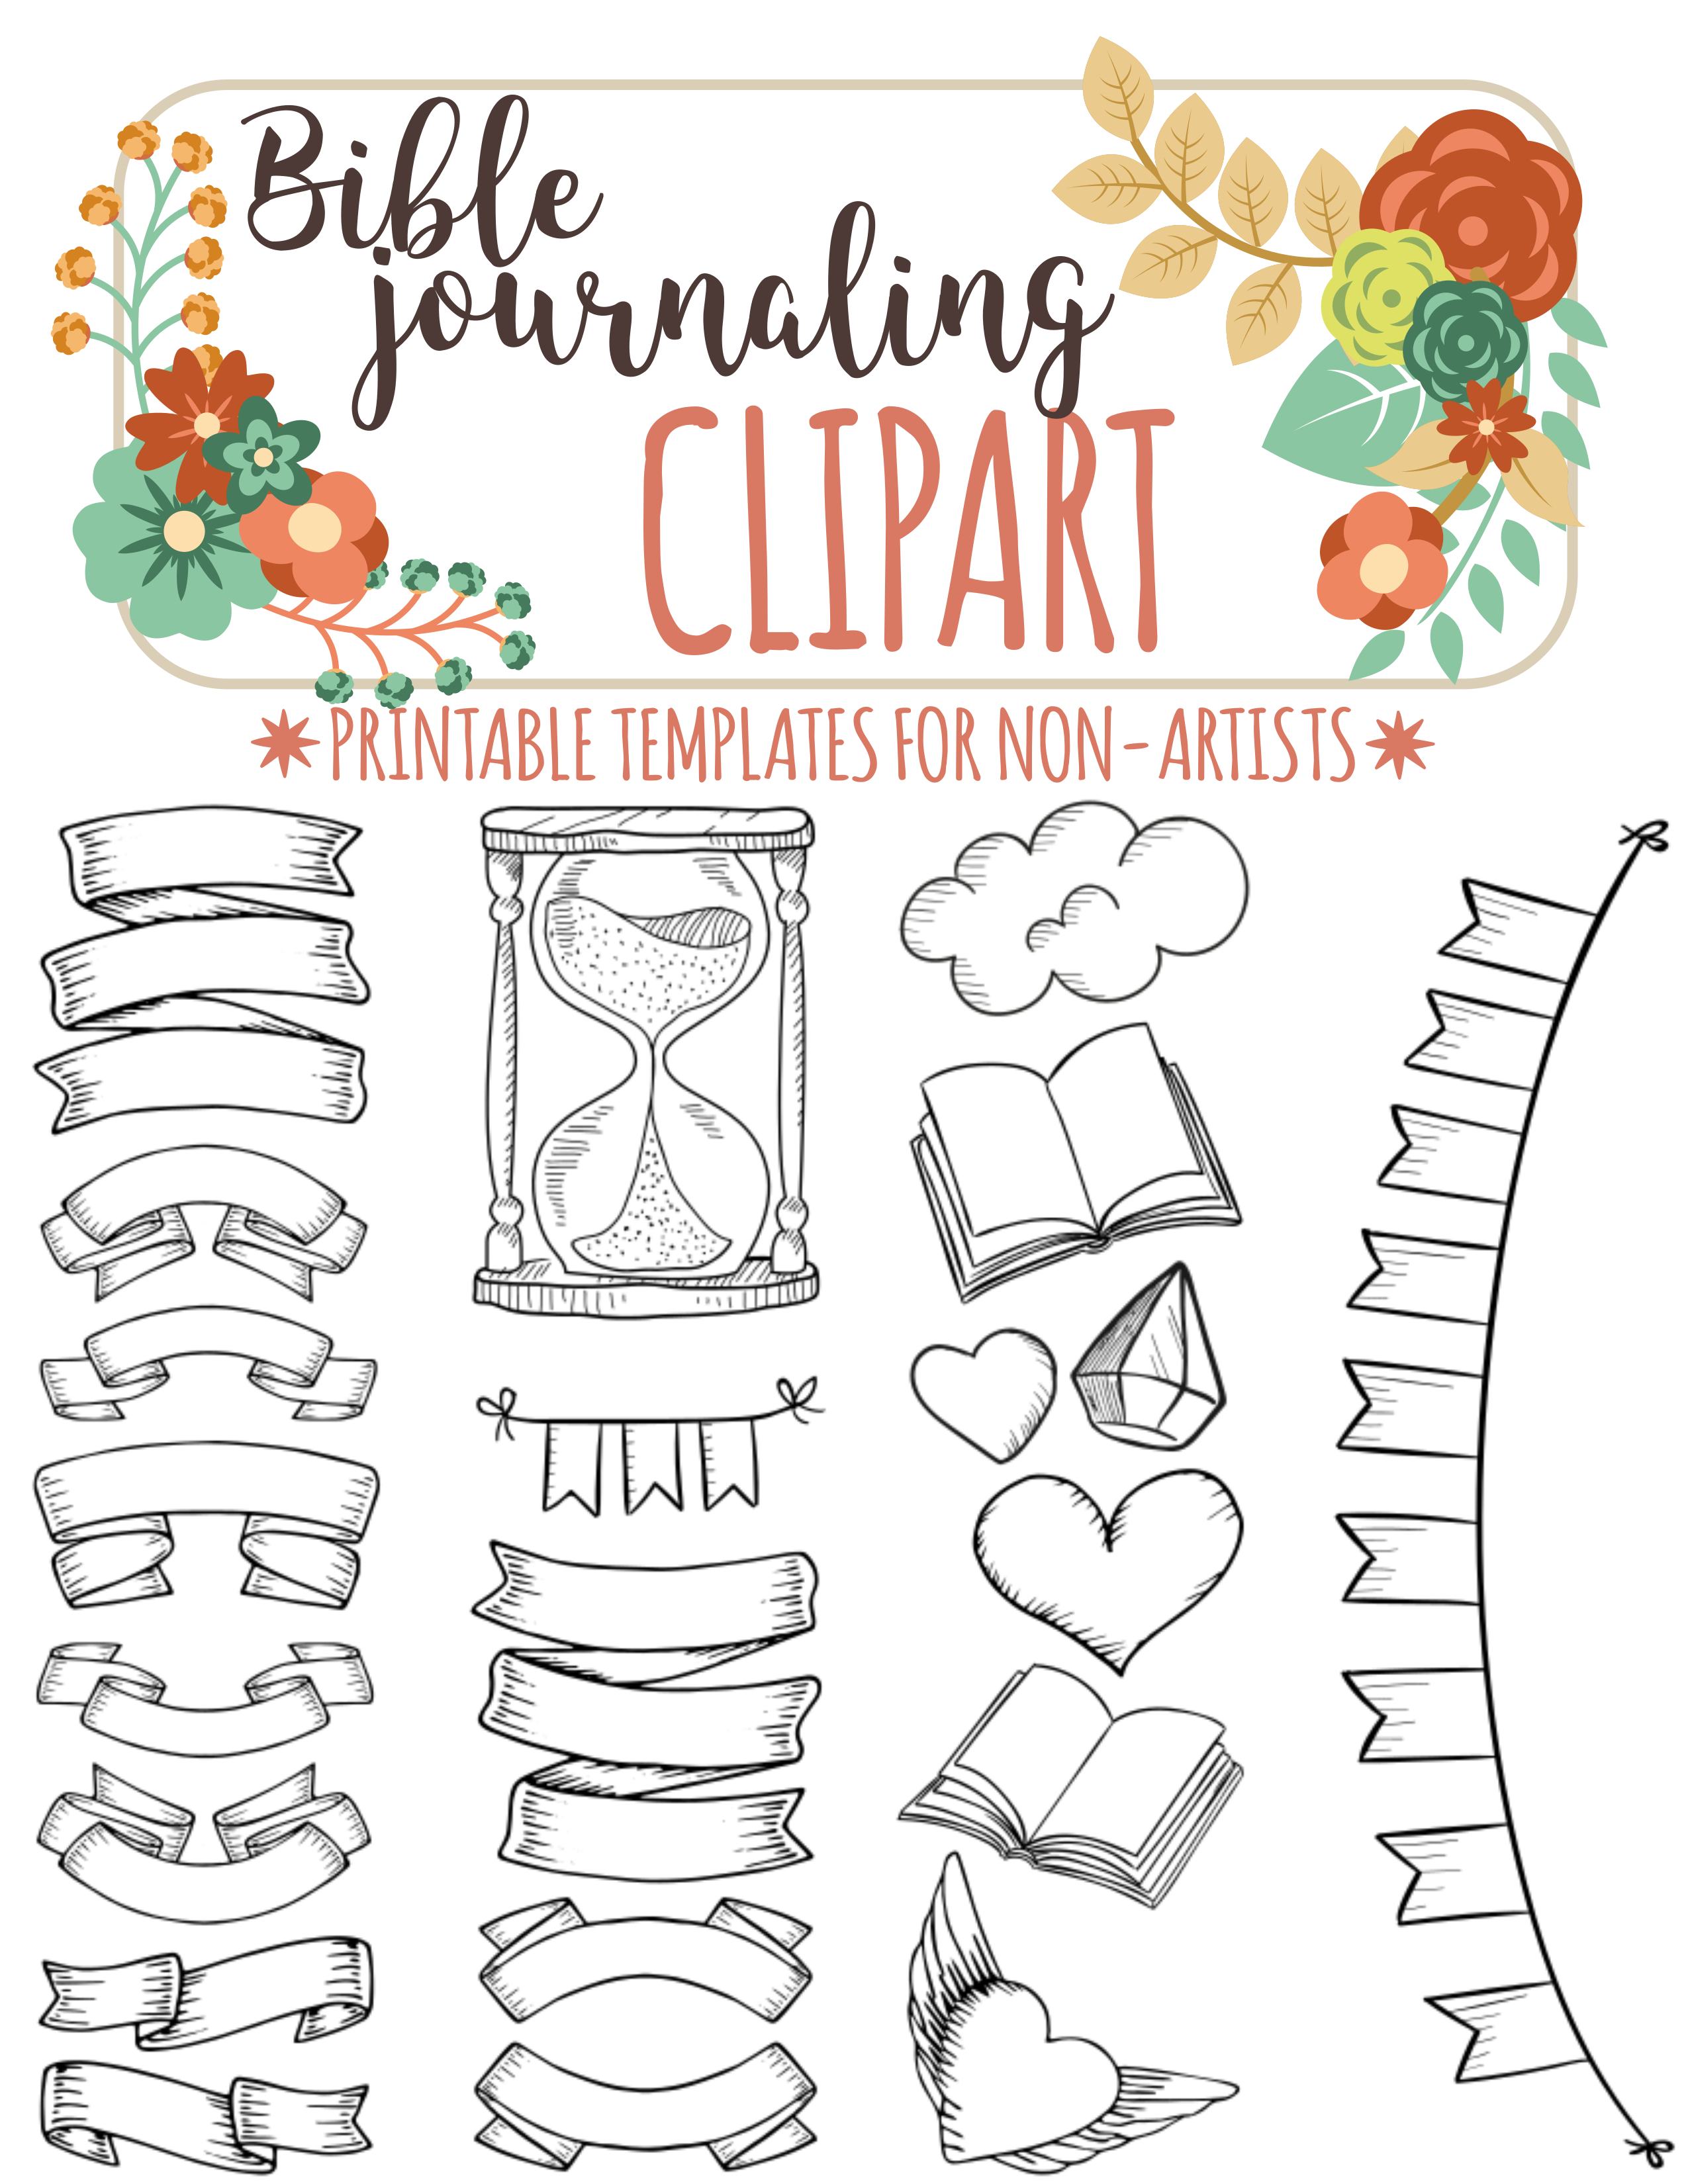 bible journaling printable clipart for non artists just print trace  [ 2550 x 3300 Pixel ]